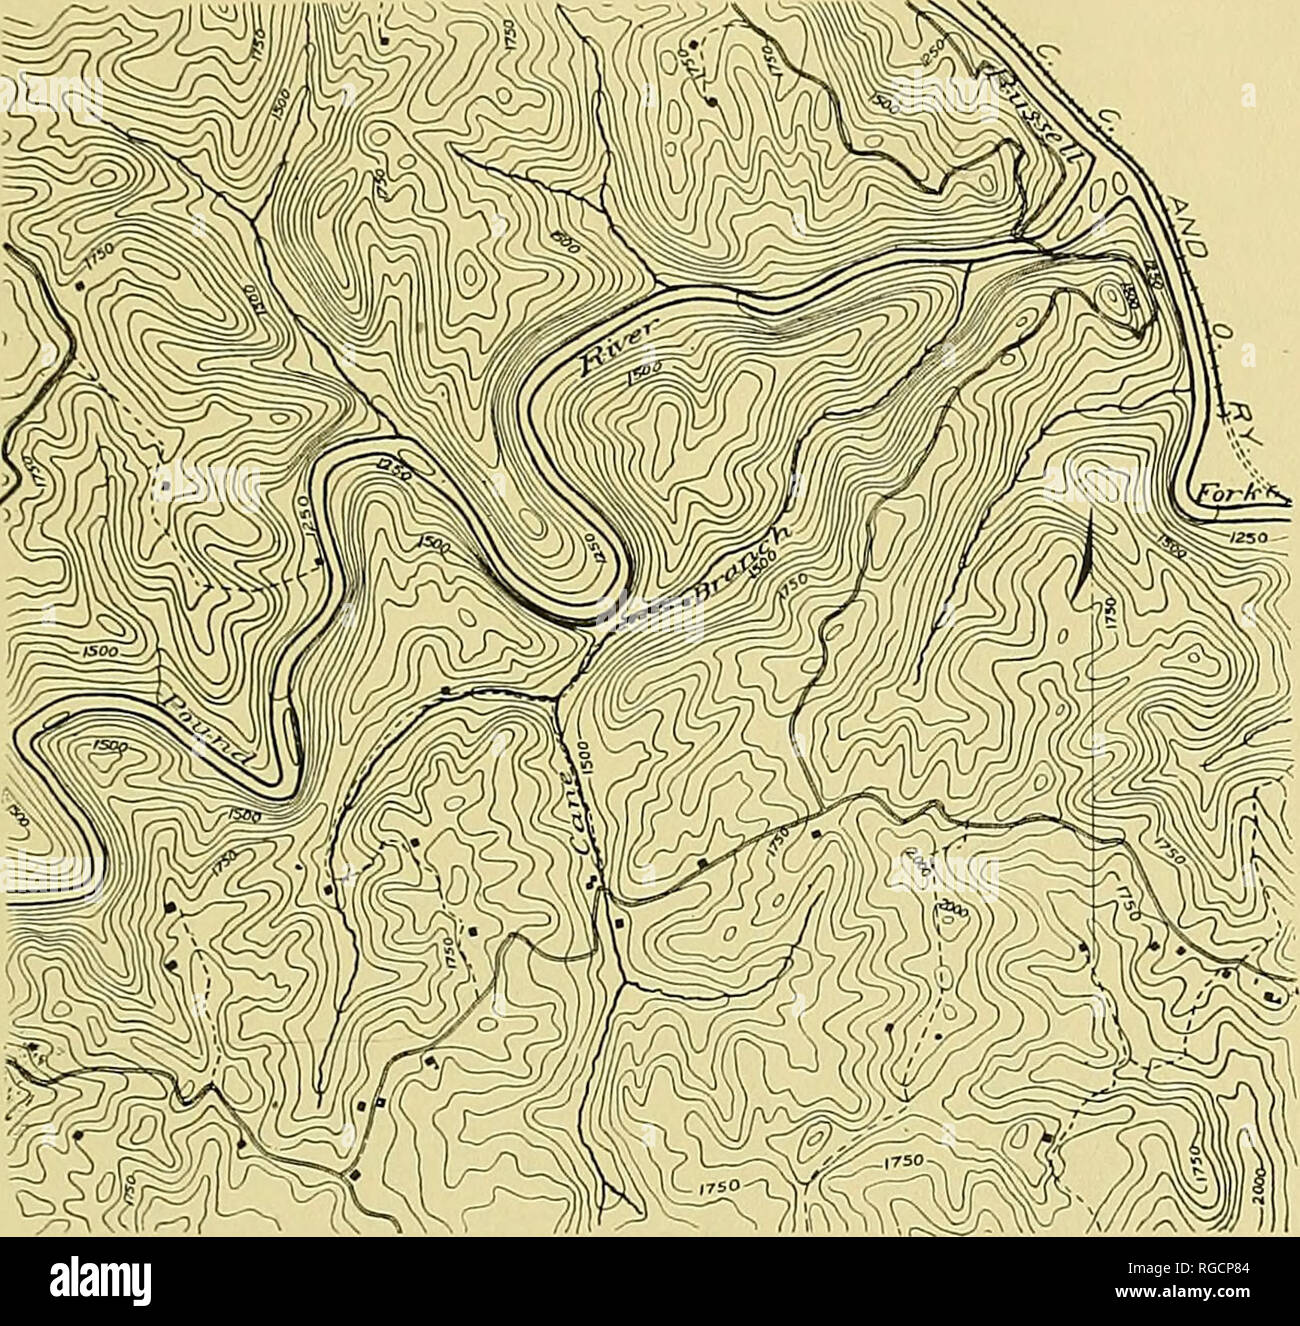 Topographic Map River Stock Photos Amp Topographic Map River Stock Images